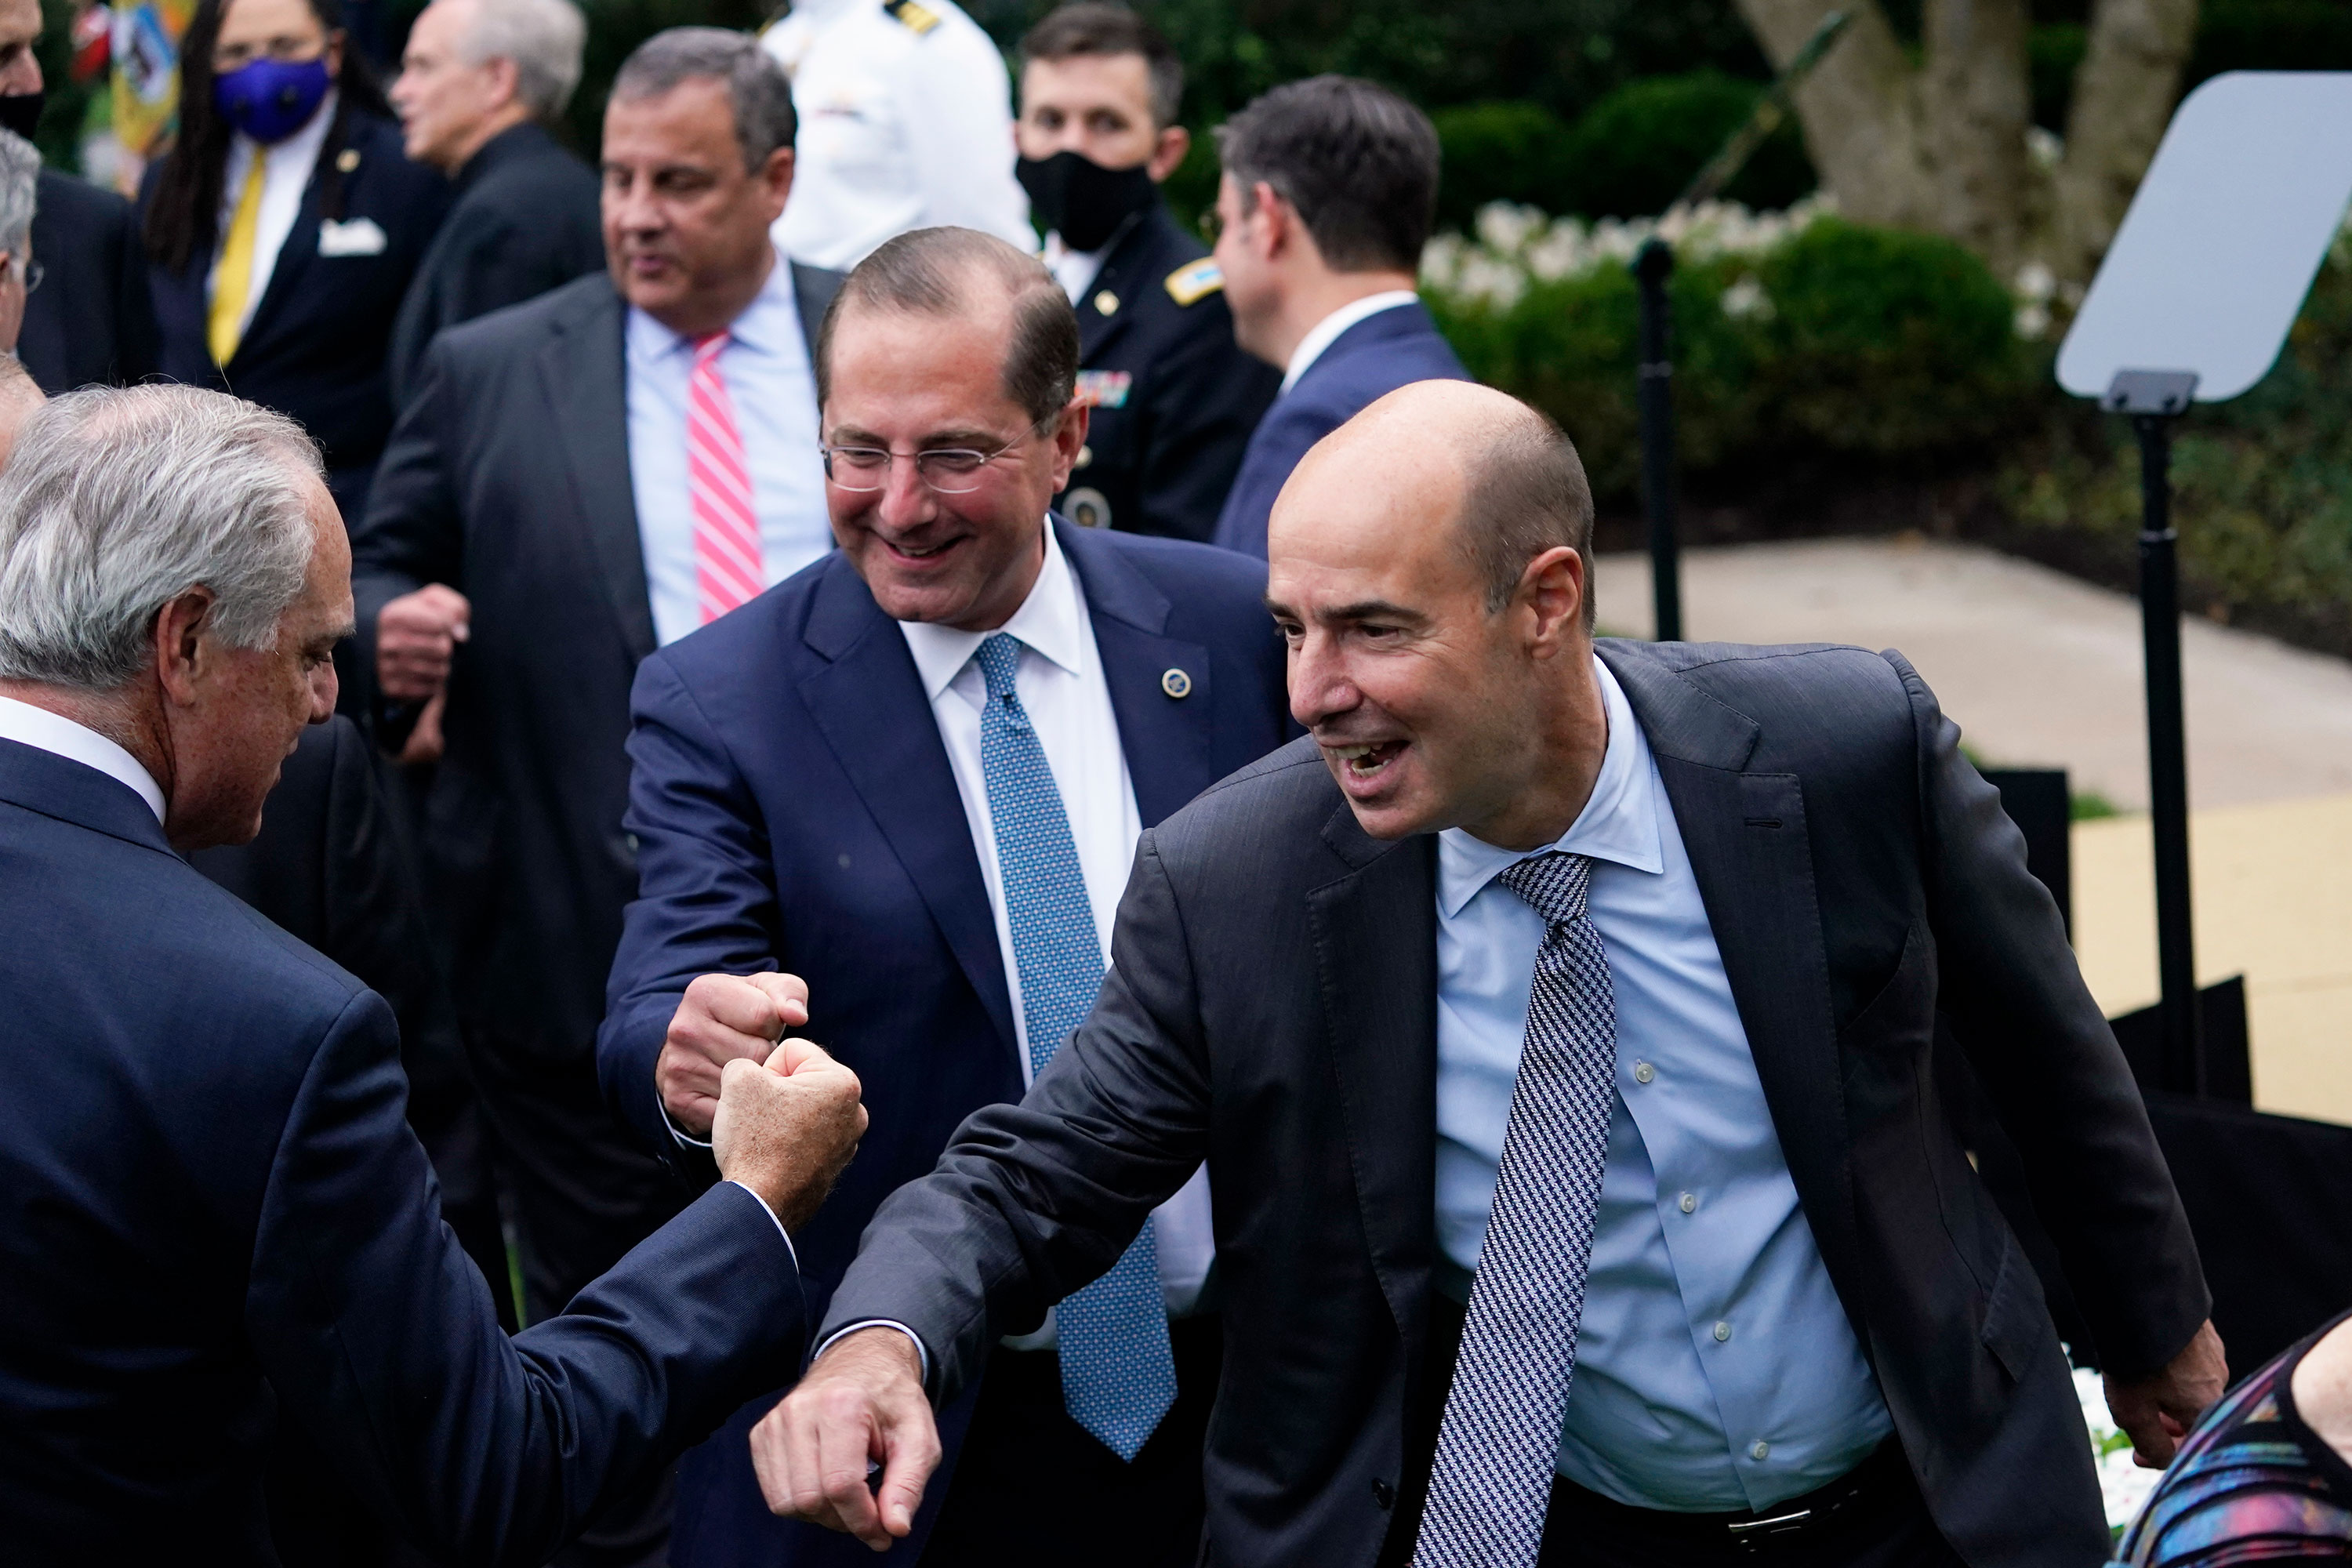 From right, Labor Secretary Eugene Scalia, Health and Human Services Secretary Alex Azar and former New Jersey Gov. Chris Christie greet people after President Donald Trump announced Judge Amy Coney Barrett as his nominee to the Supreme Court, in the Rose Garden at the White House on September 26 in Washington, DC.